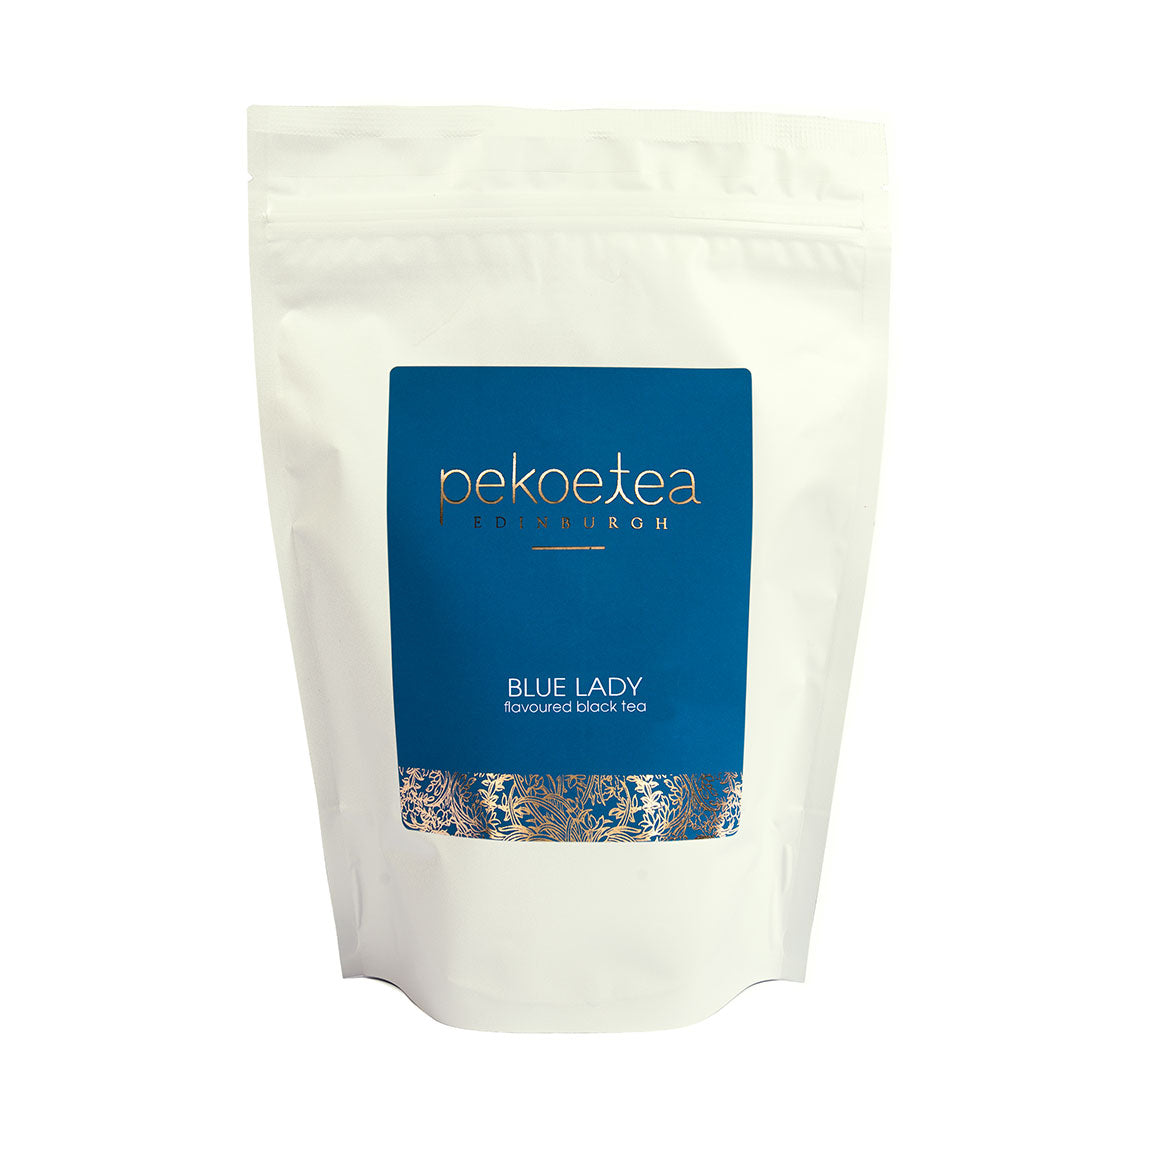 PekoeTea Edinburgh Blue Lady Flavoured Black Tea 250g Re-sealable Pouch